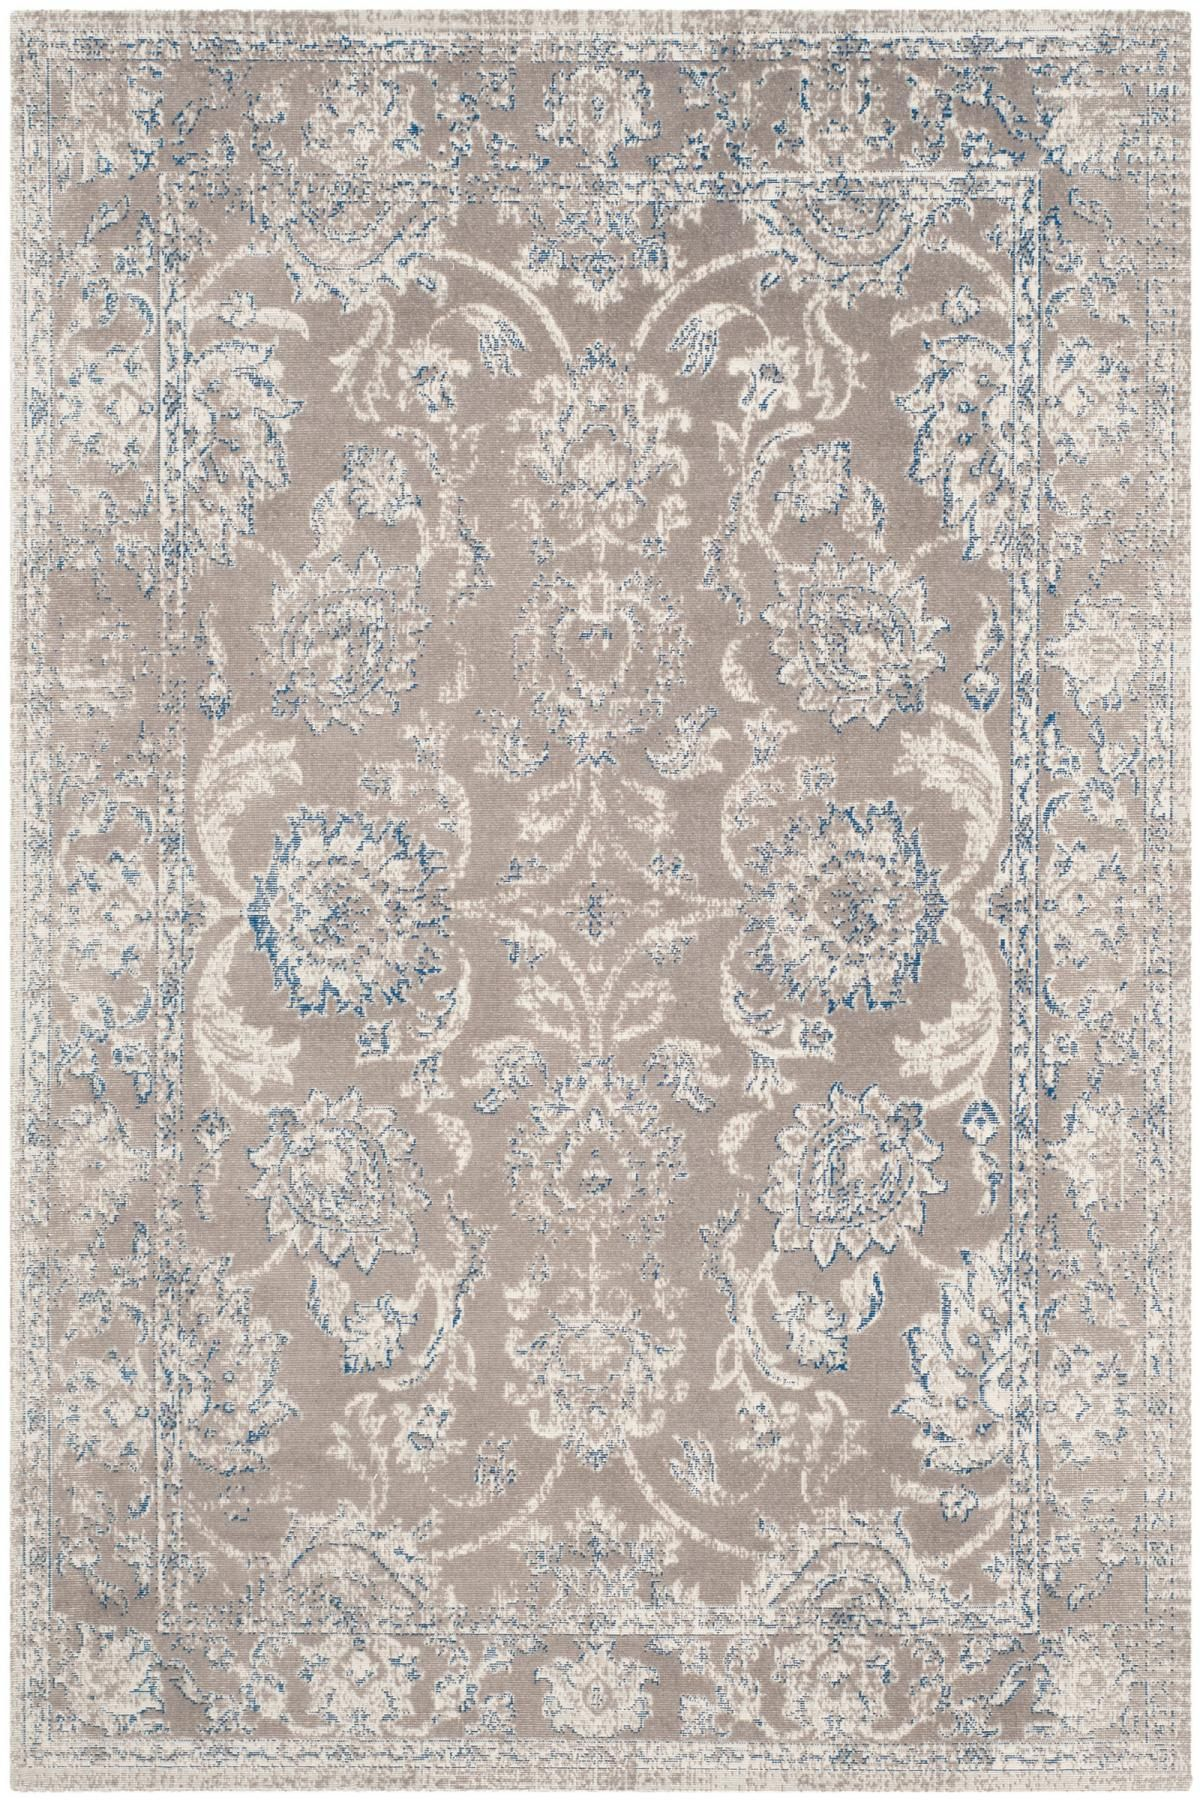 Rug Ptn316b Patina Area Rugs By Safavieh Area Rugs Rugs Blue Area Rugs